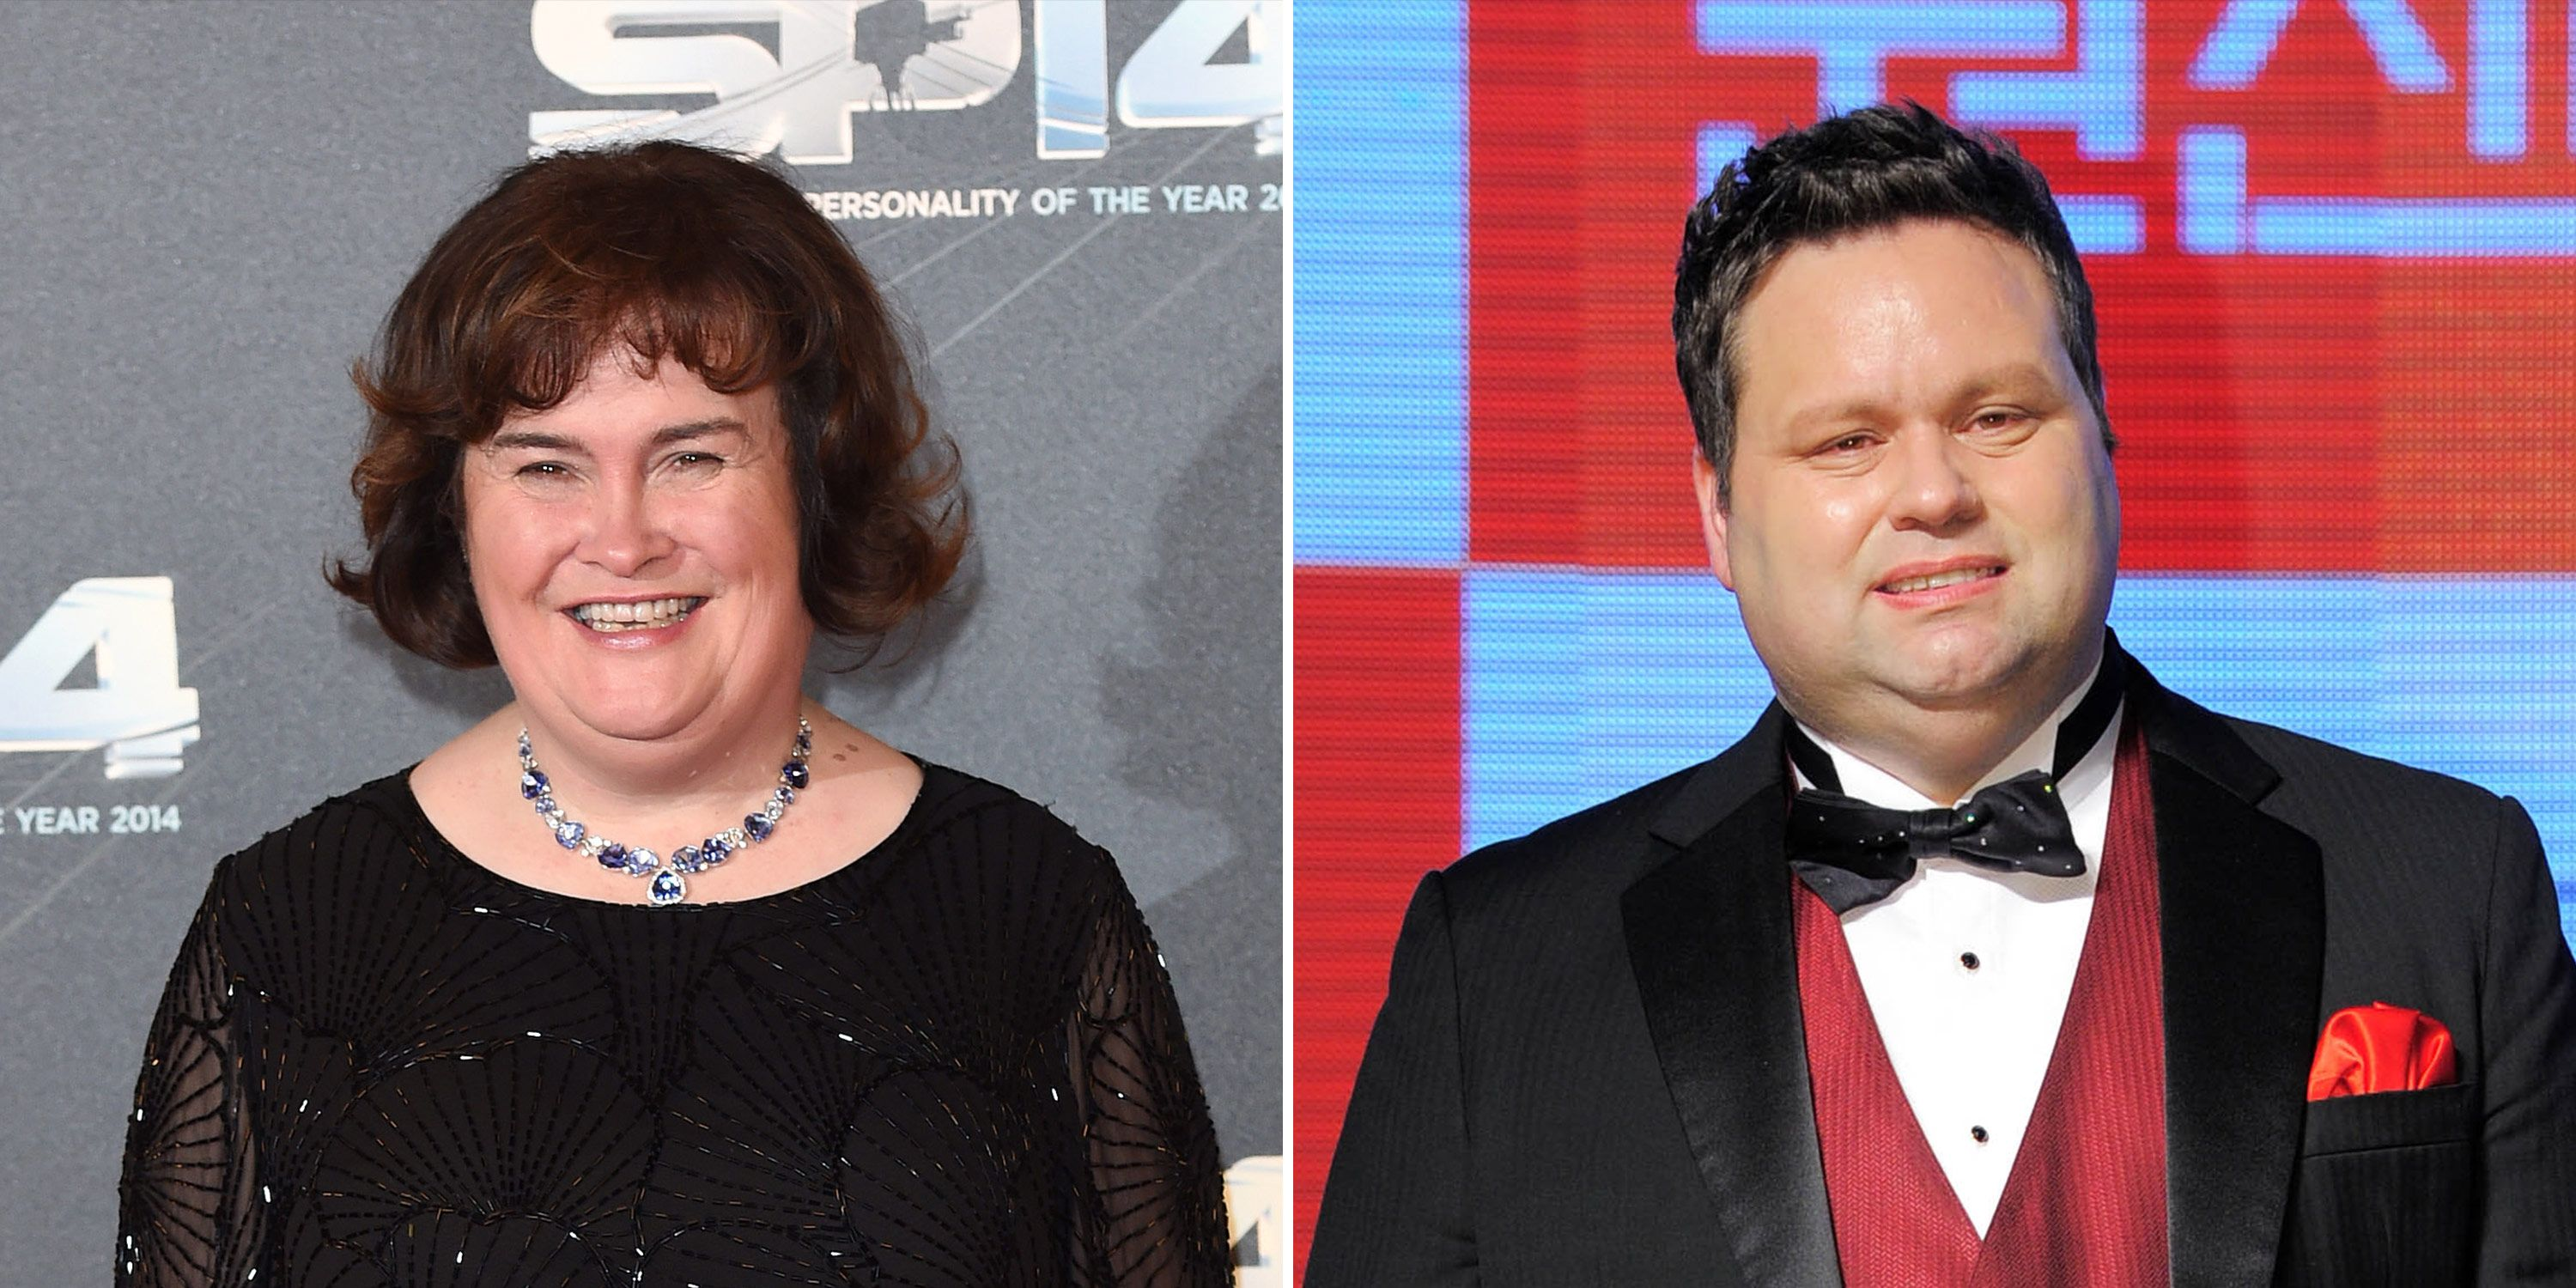 Susan Boyle Paul Potts, Americas Got Talent: Champions